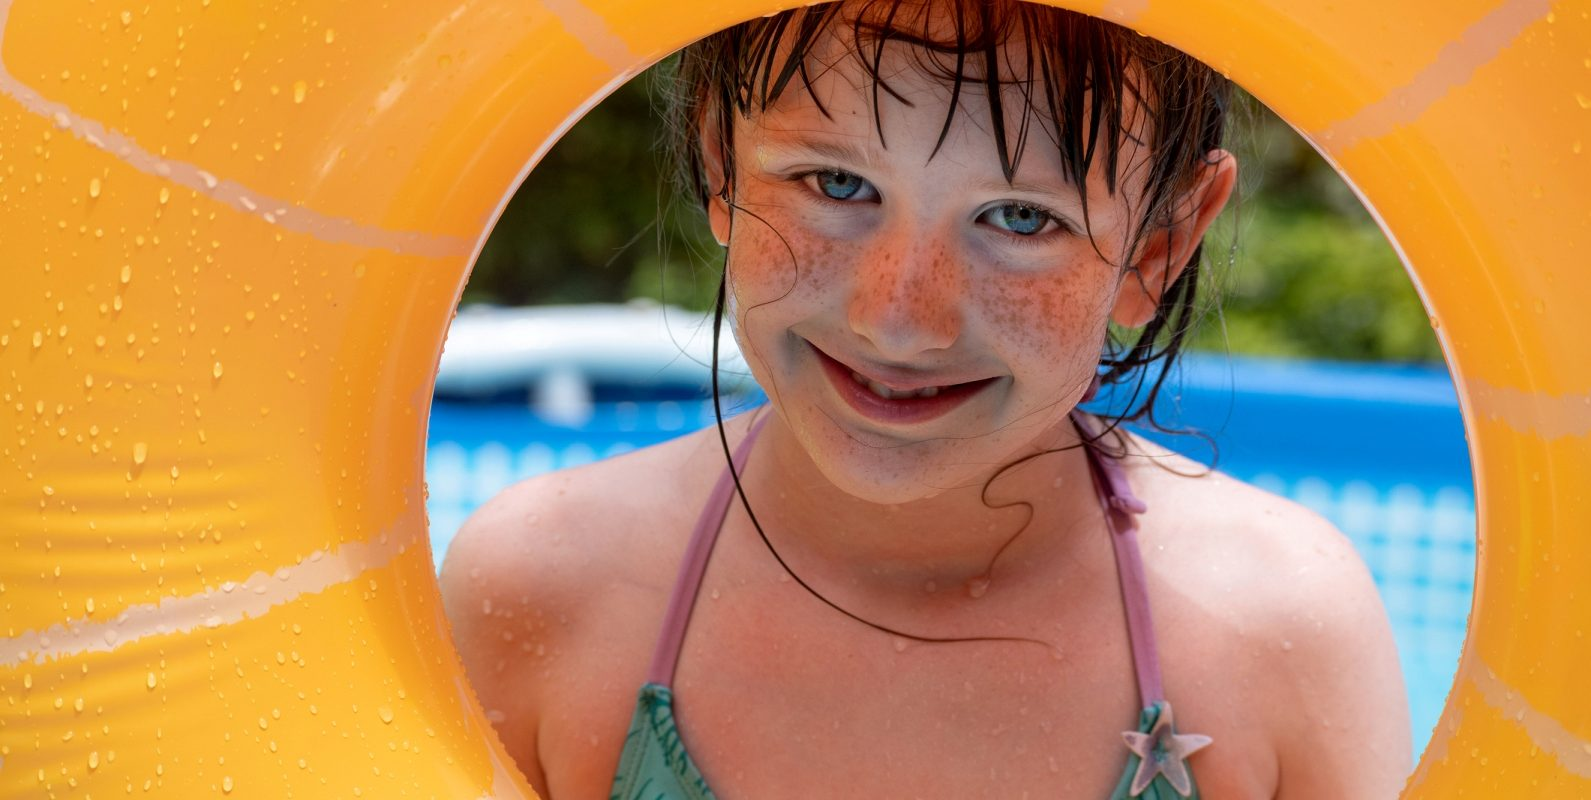 Pool safety, powered by Nemours Children's Health System